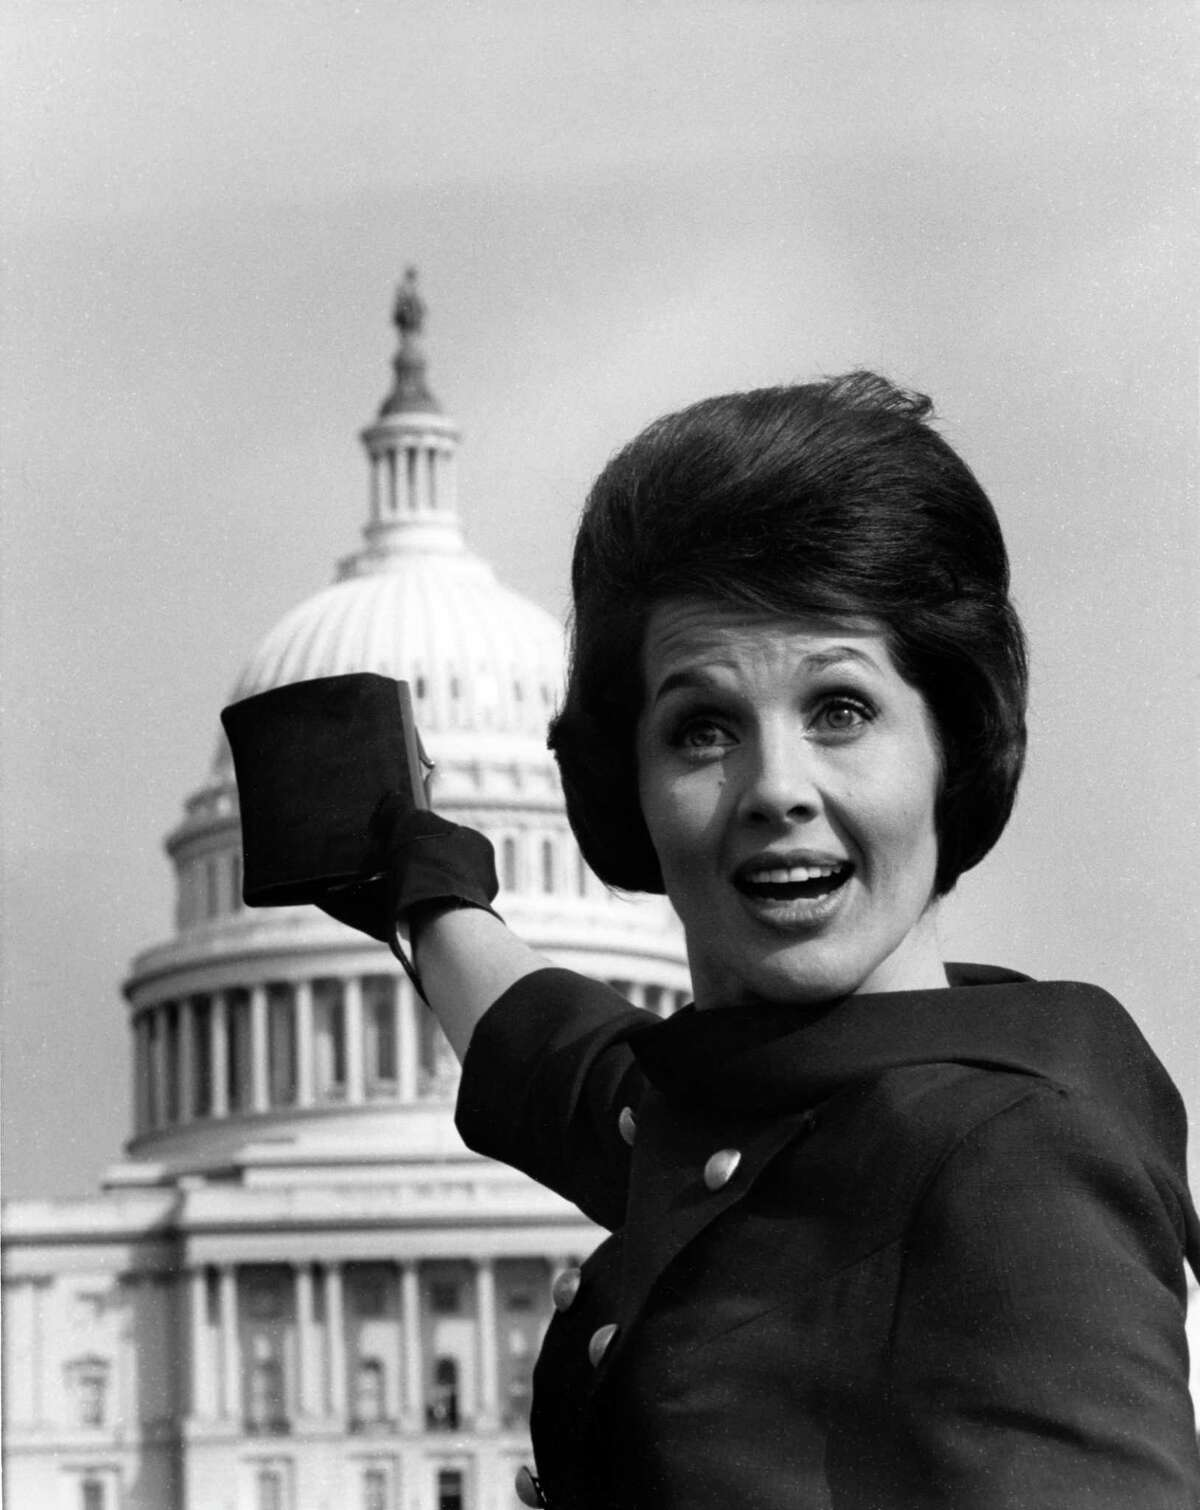 March 1965 - KPRC-TV personality Ginny Pace in Washington DC